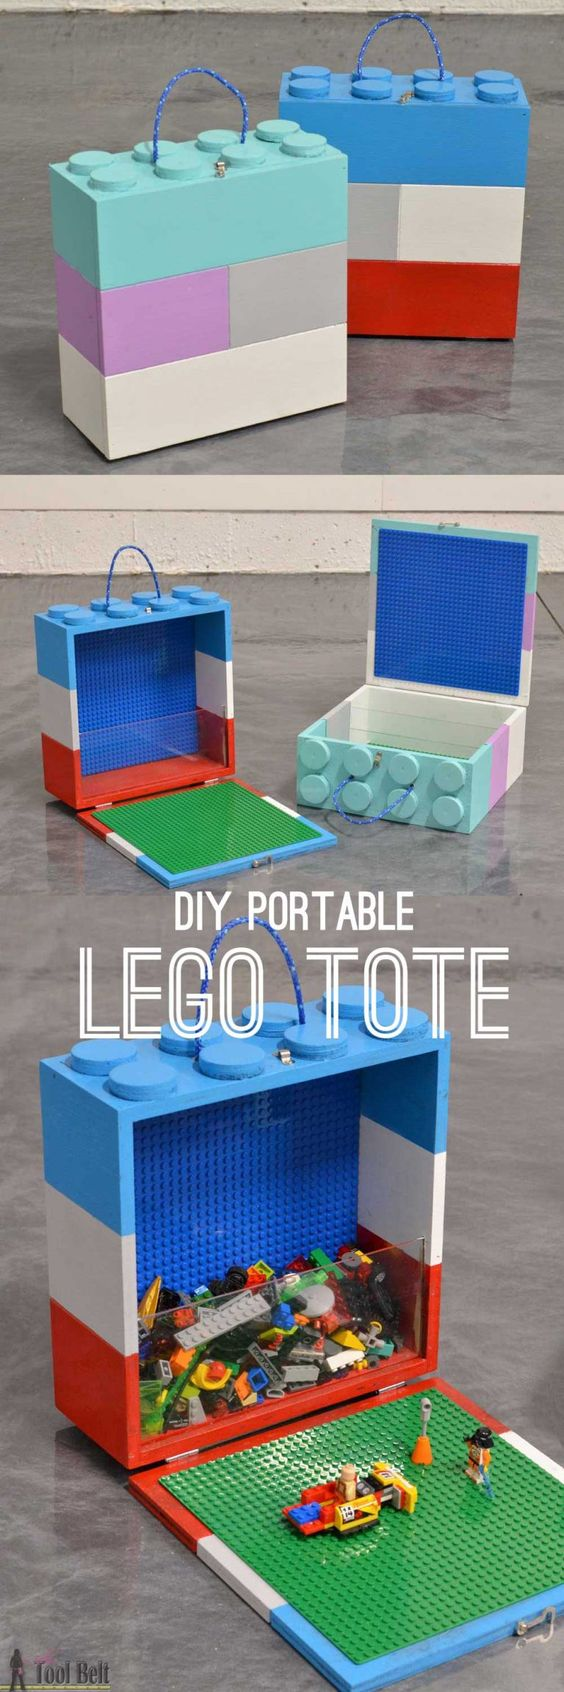 20 fun lego project ideas for kids